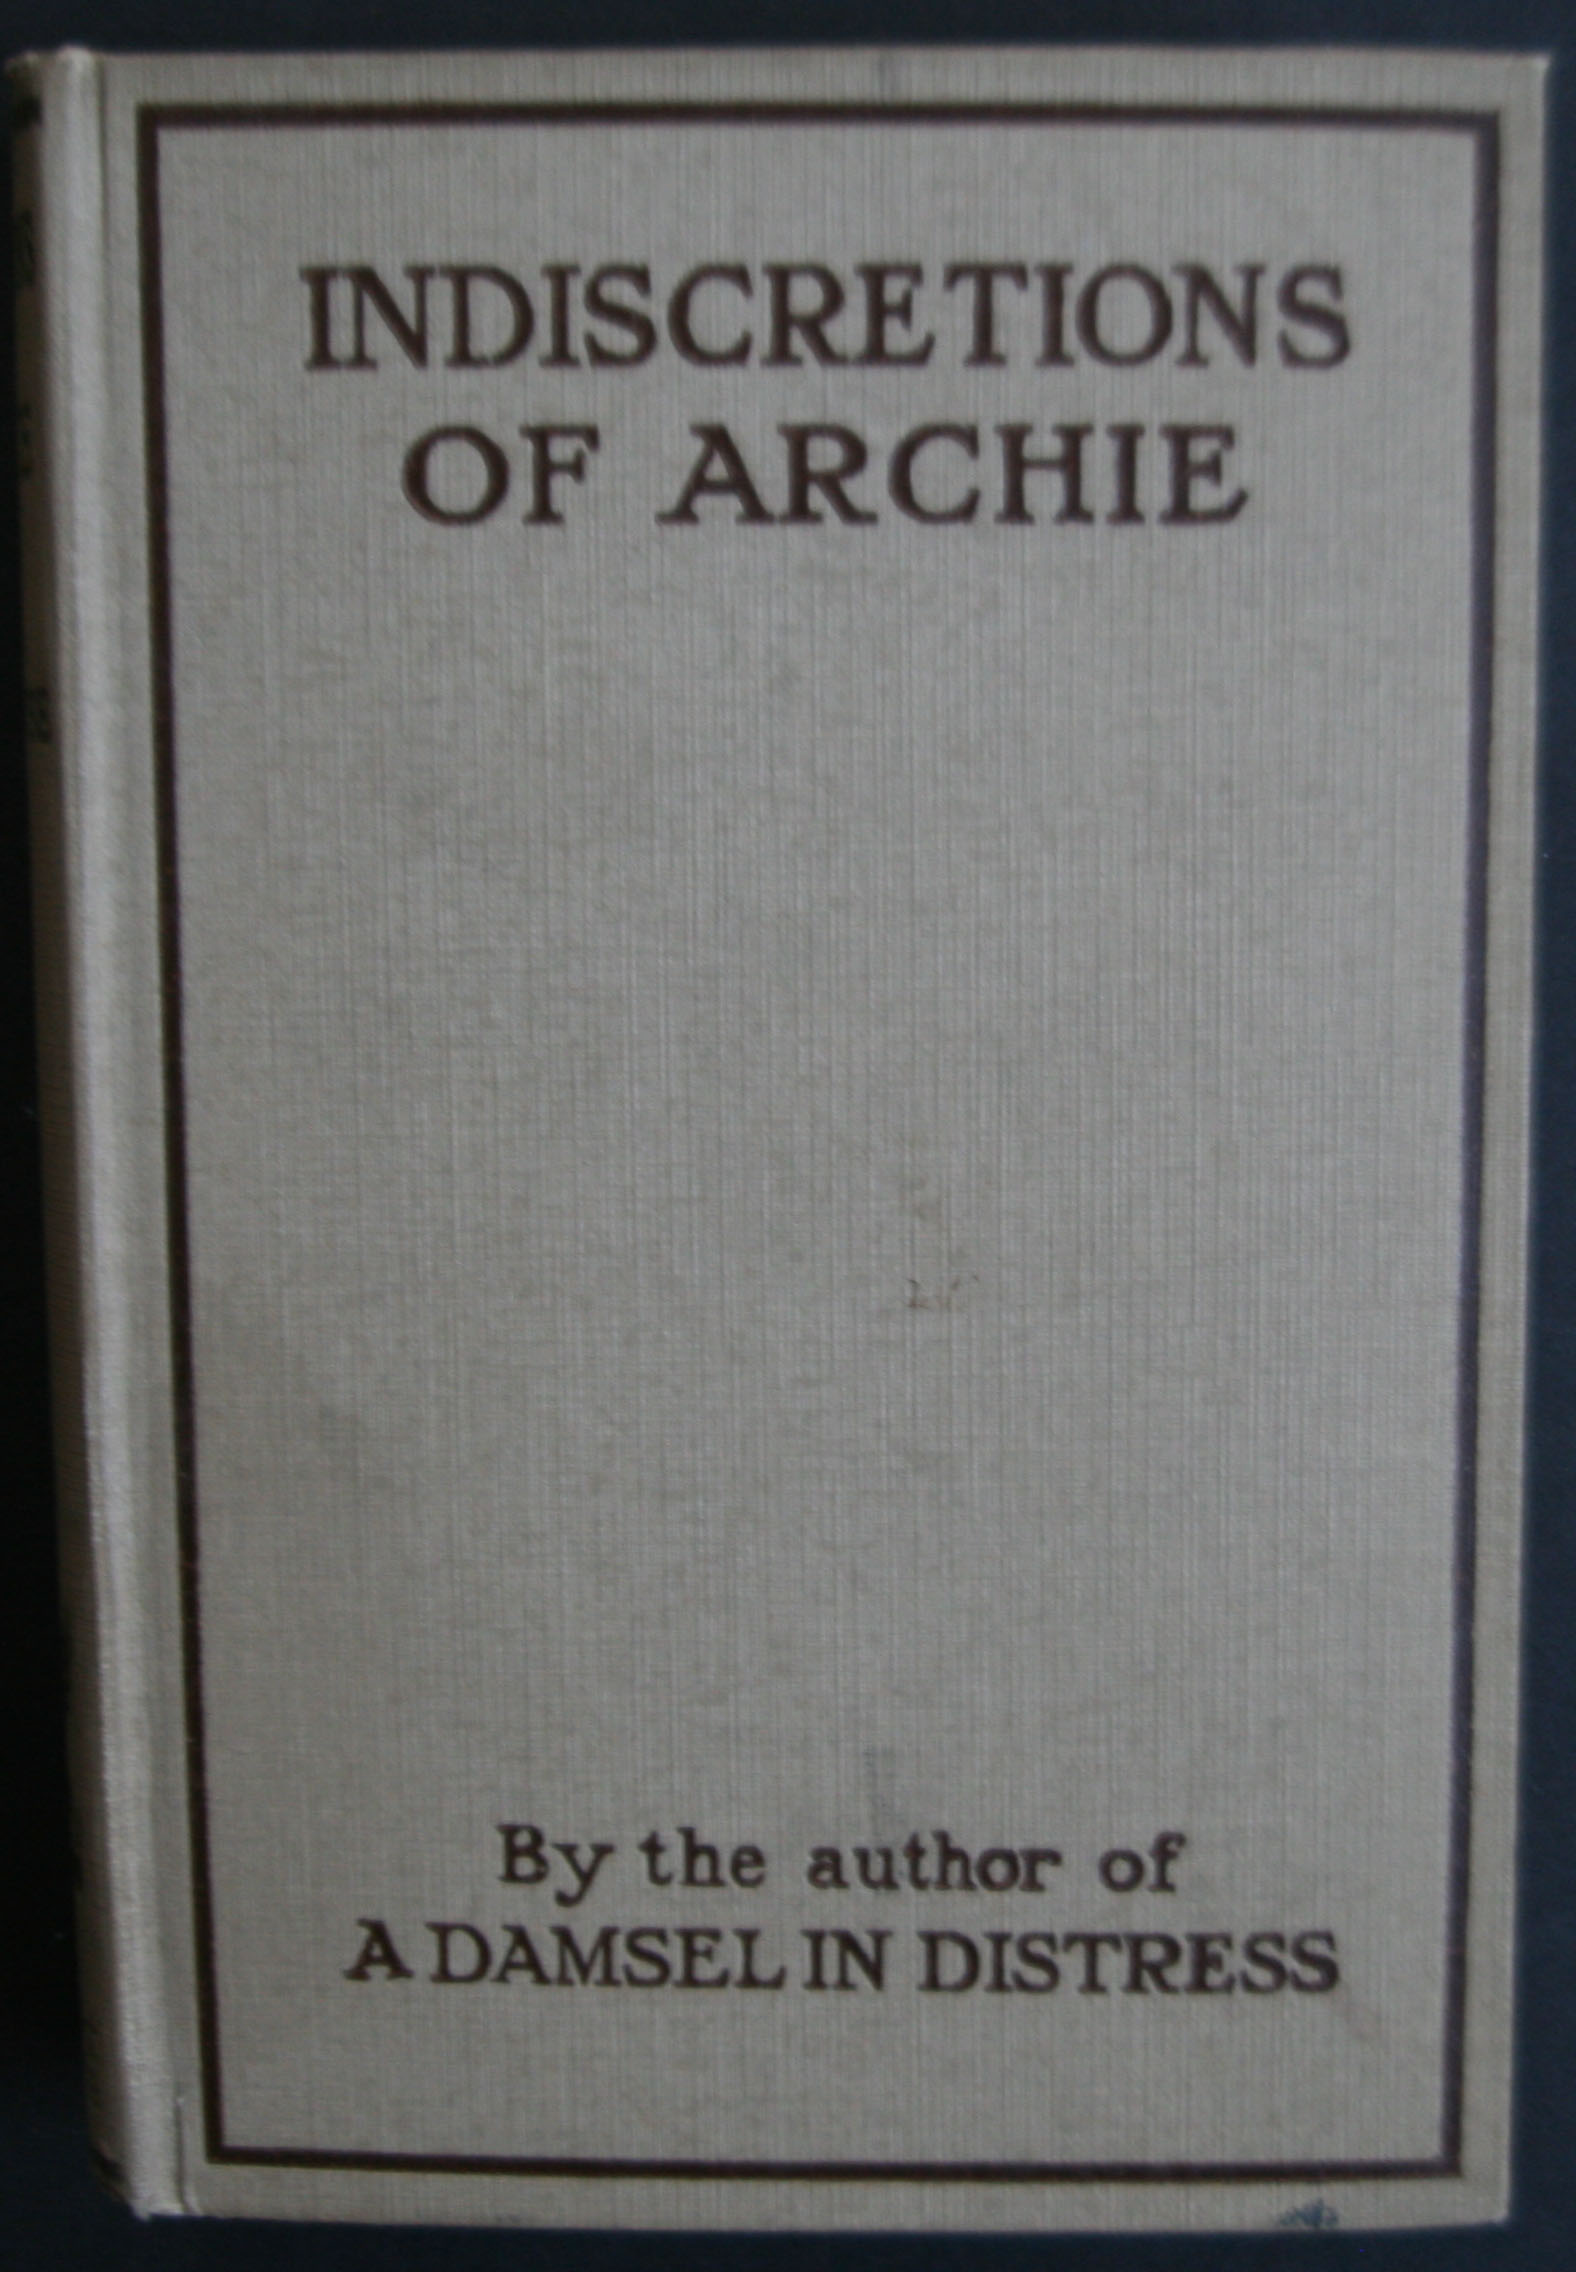 p g wodehouse indiscretions of archie